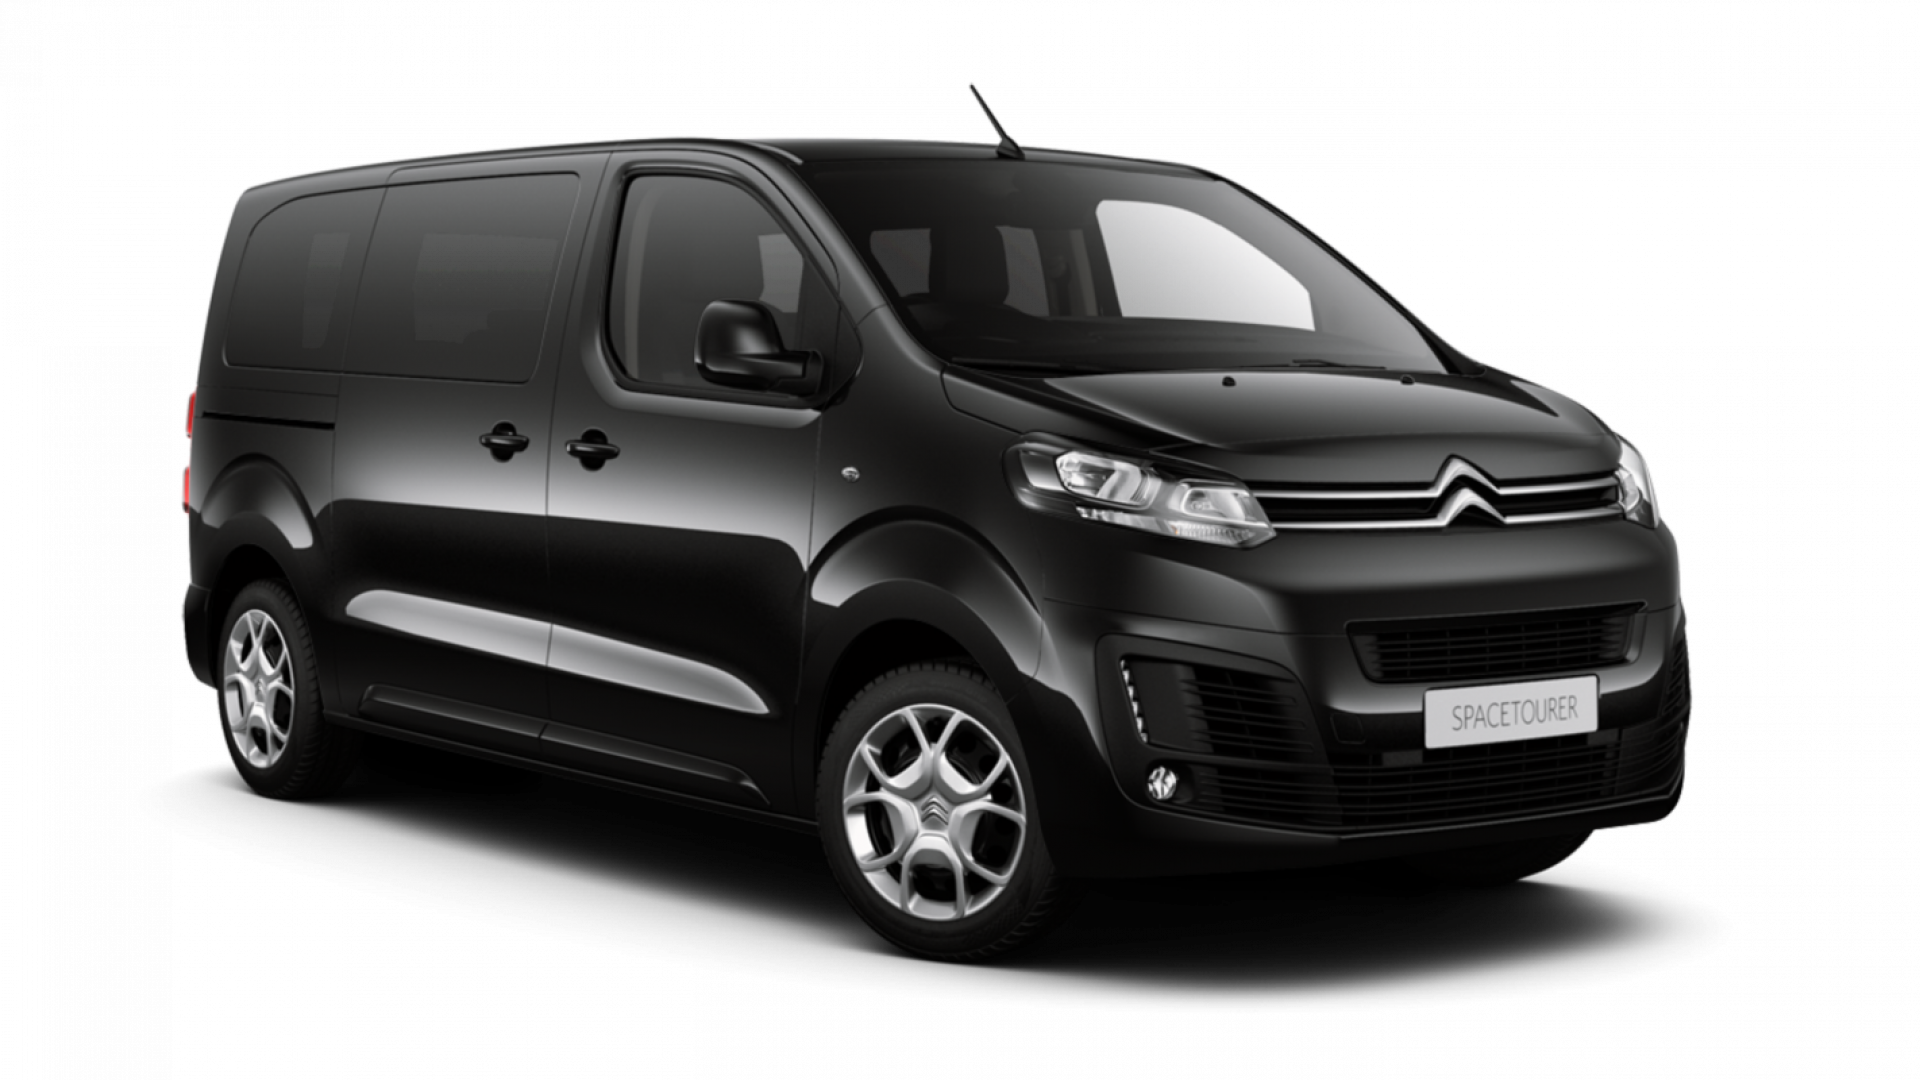 new citroen space tourer estate 2 0 bluehdi 150 feel xl 8 seat 5dr robins and day. Black Bedroom Furniture Sets. Home Design Ideas